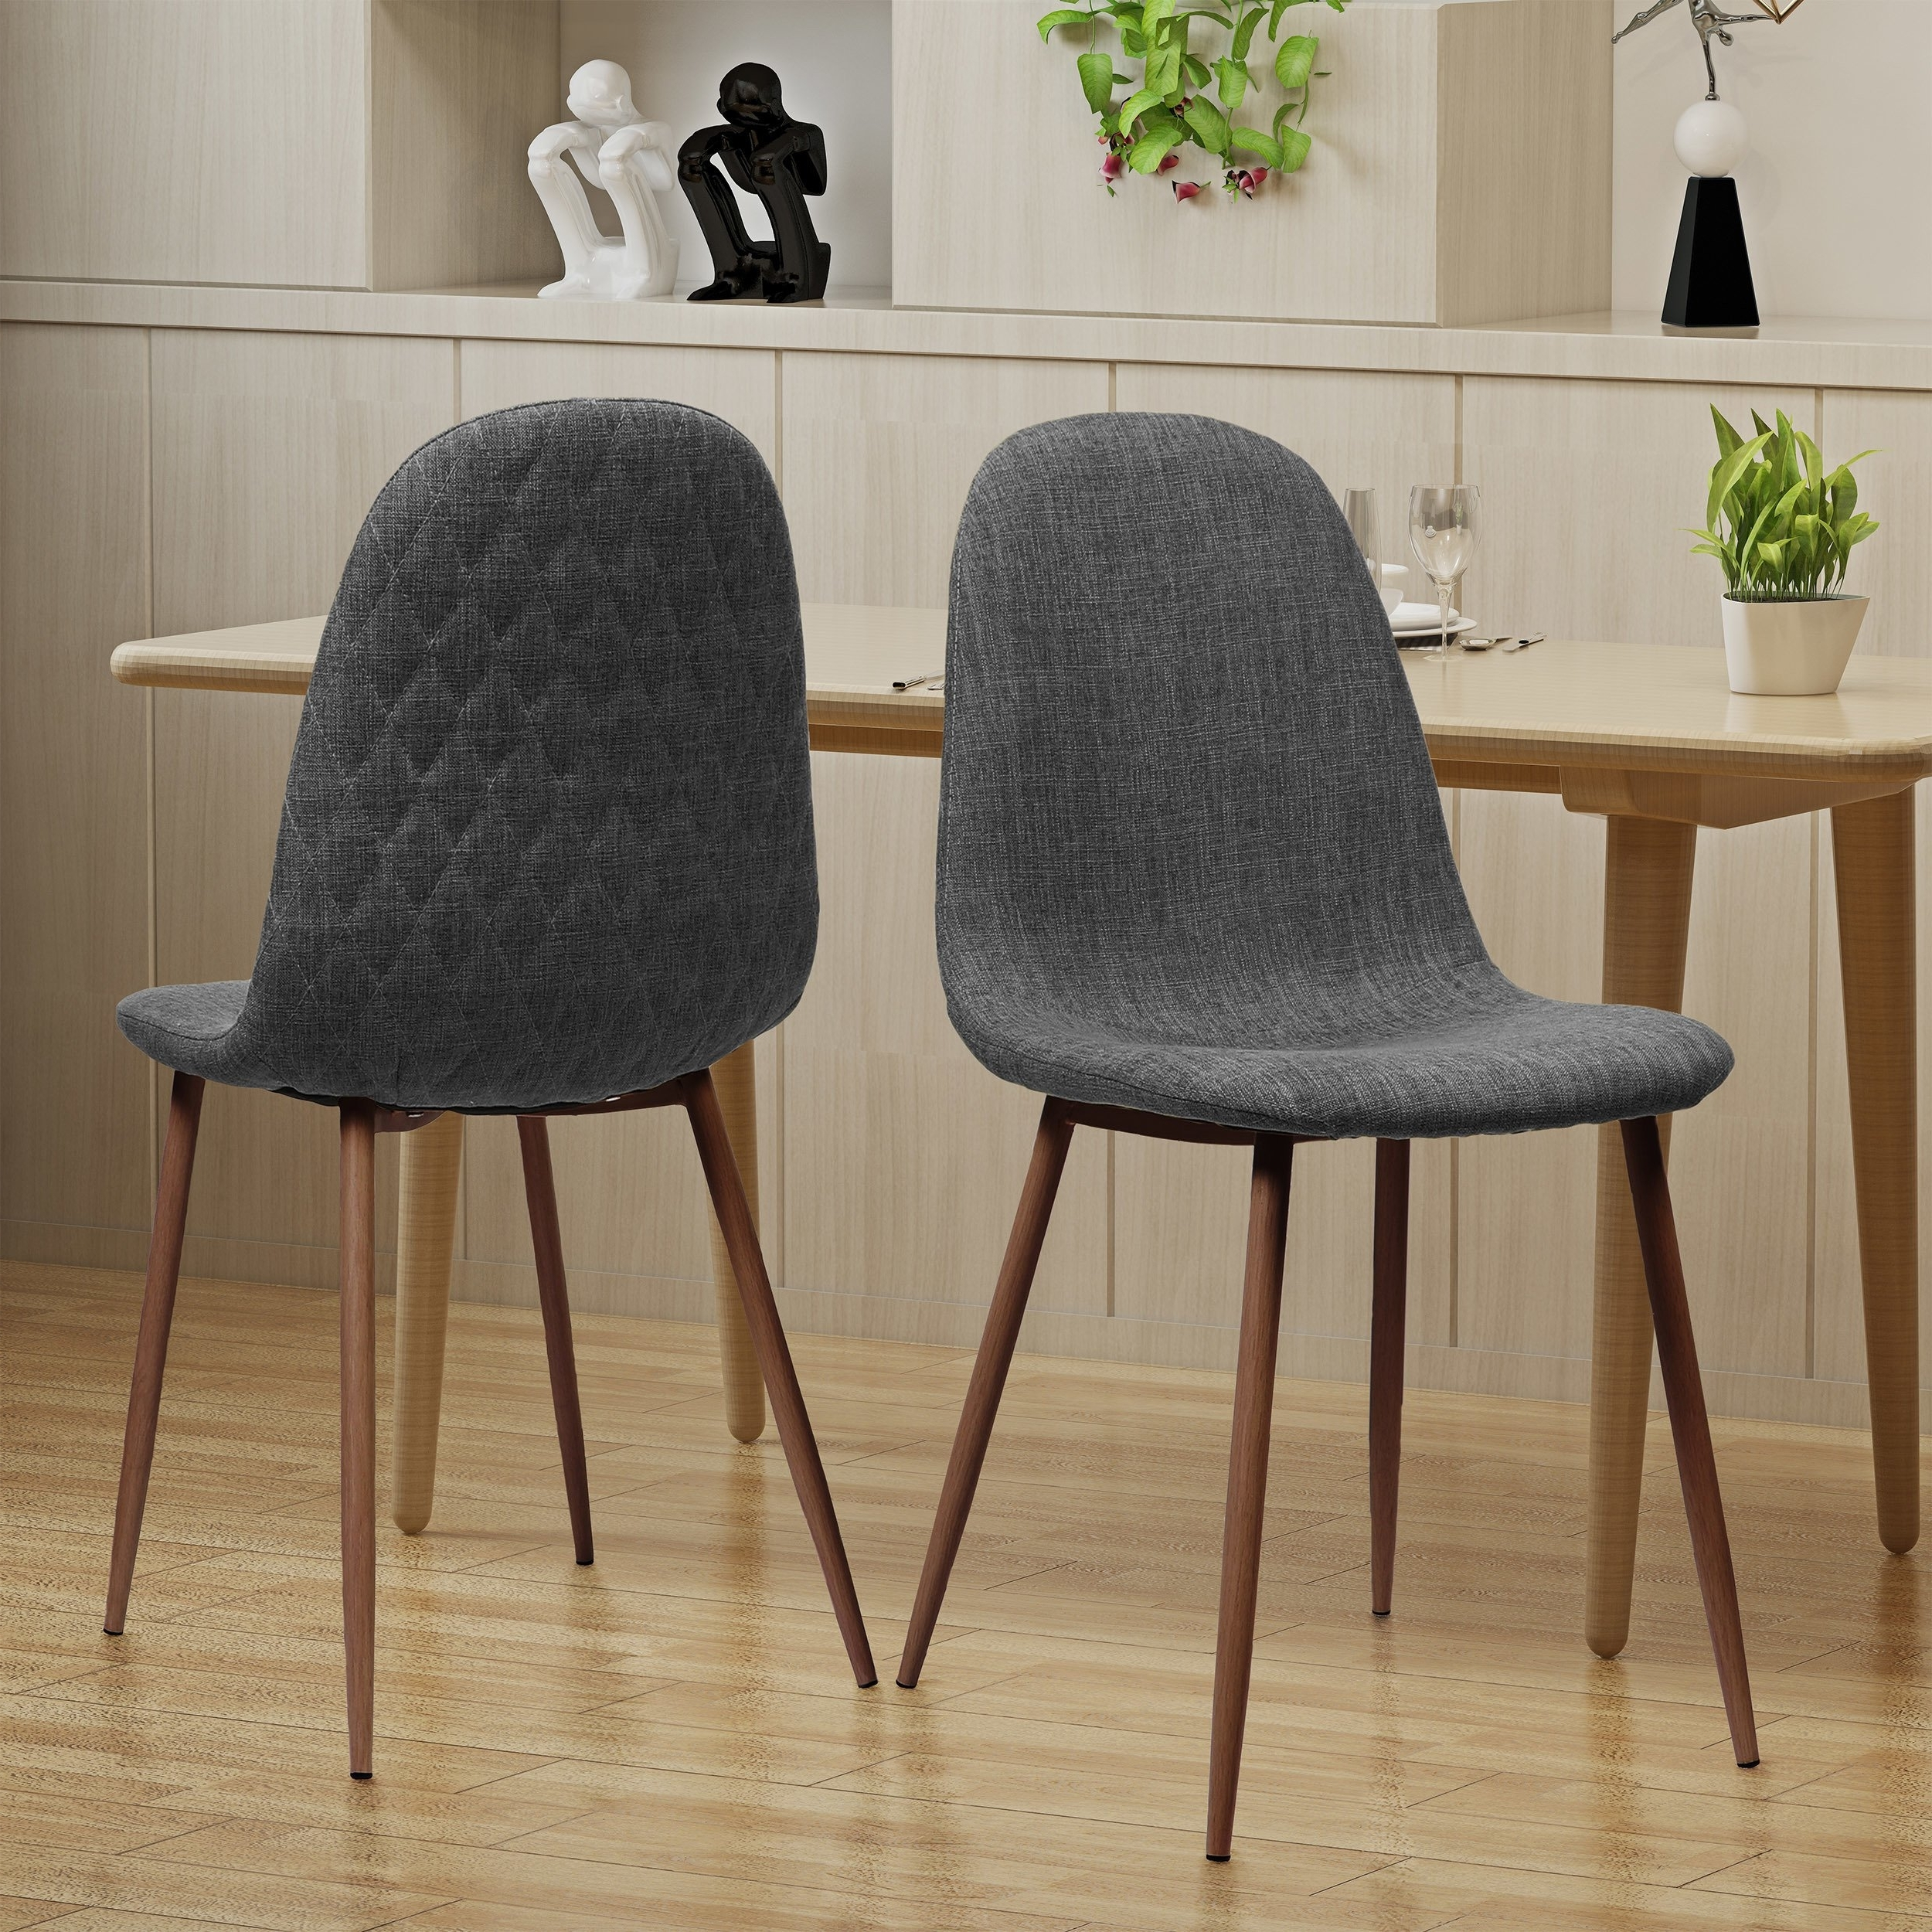 Famous Caden Upholstered Side Chairs With Shop Caden Mid Century Fabric Dining Chair (set Of 2)christopher (View 6 of 20)